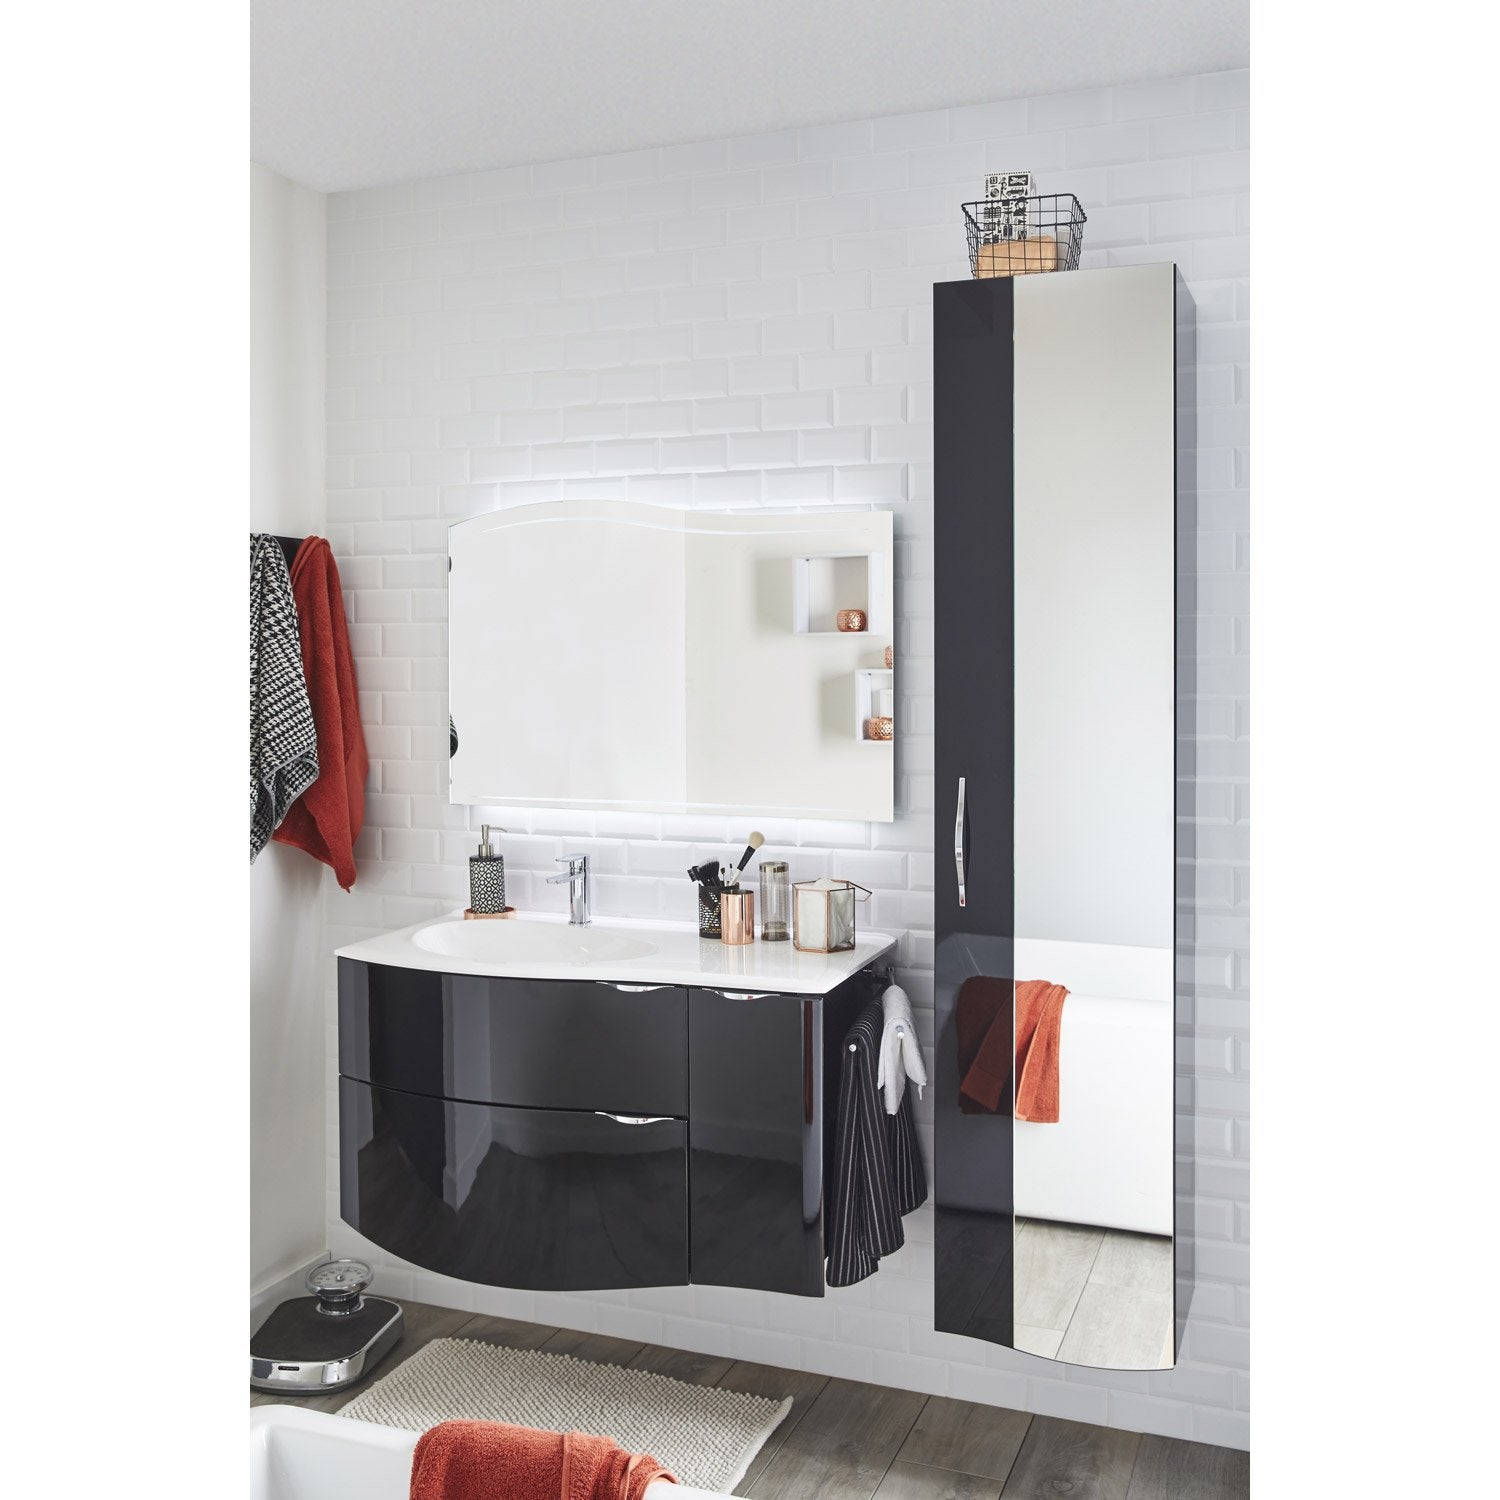 soldes salle de bain leroy merlin les. Black Bedroom Furniture Sets. Home Design Ideas